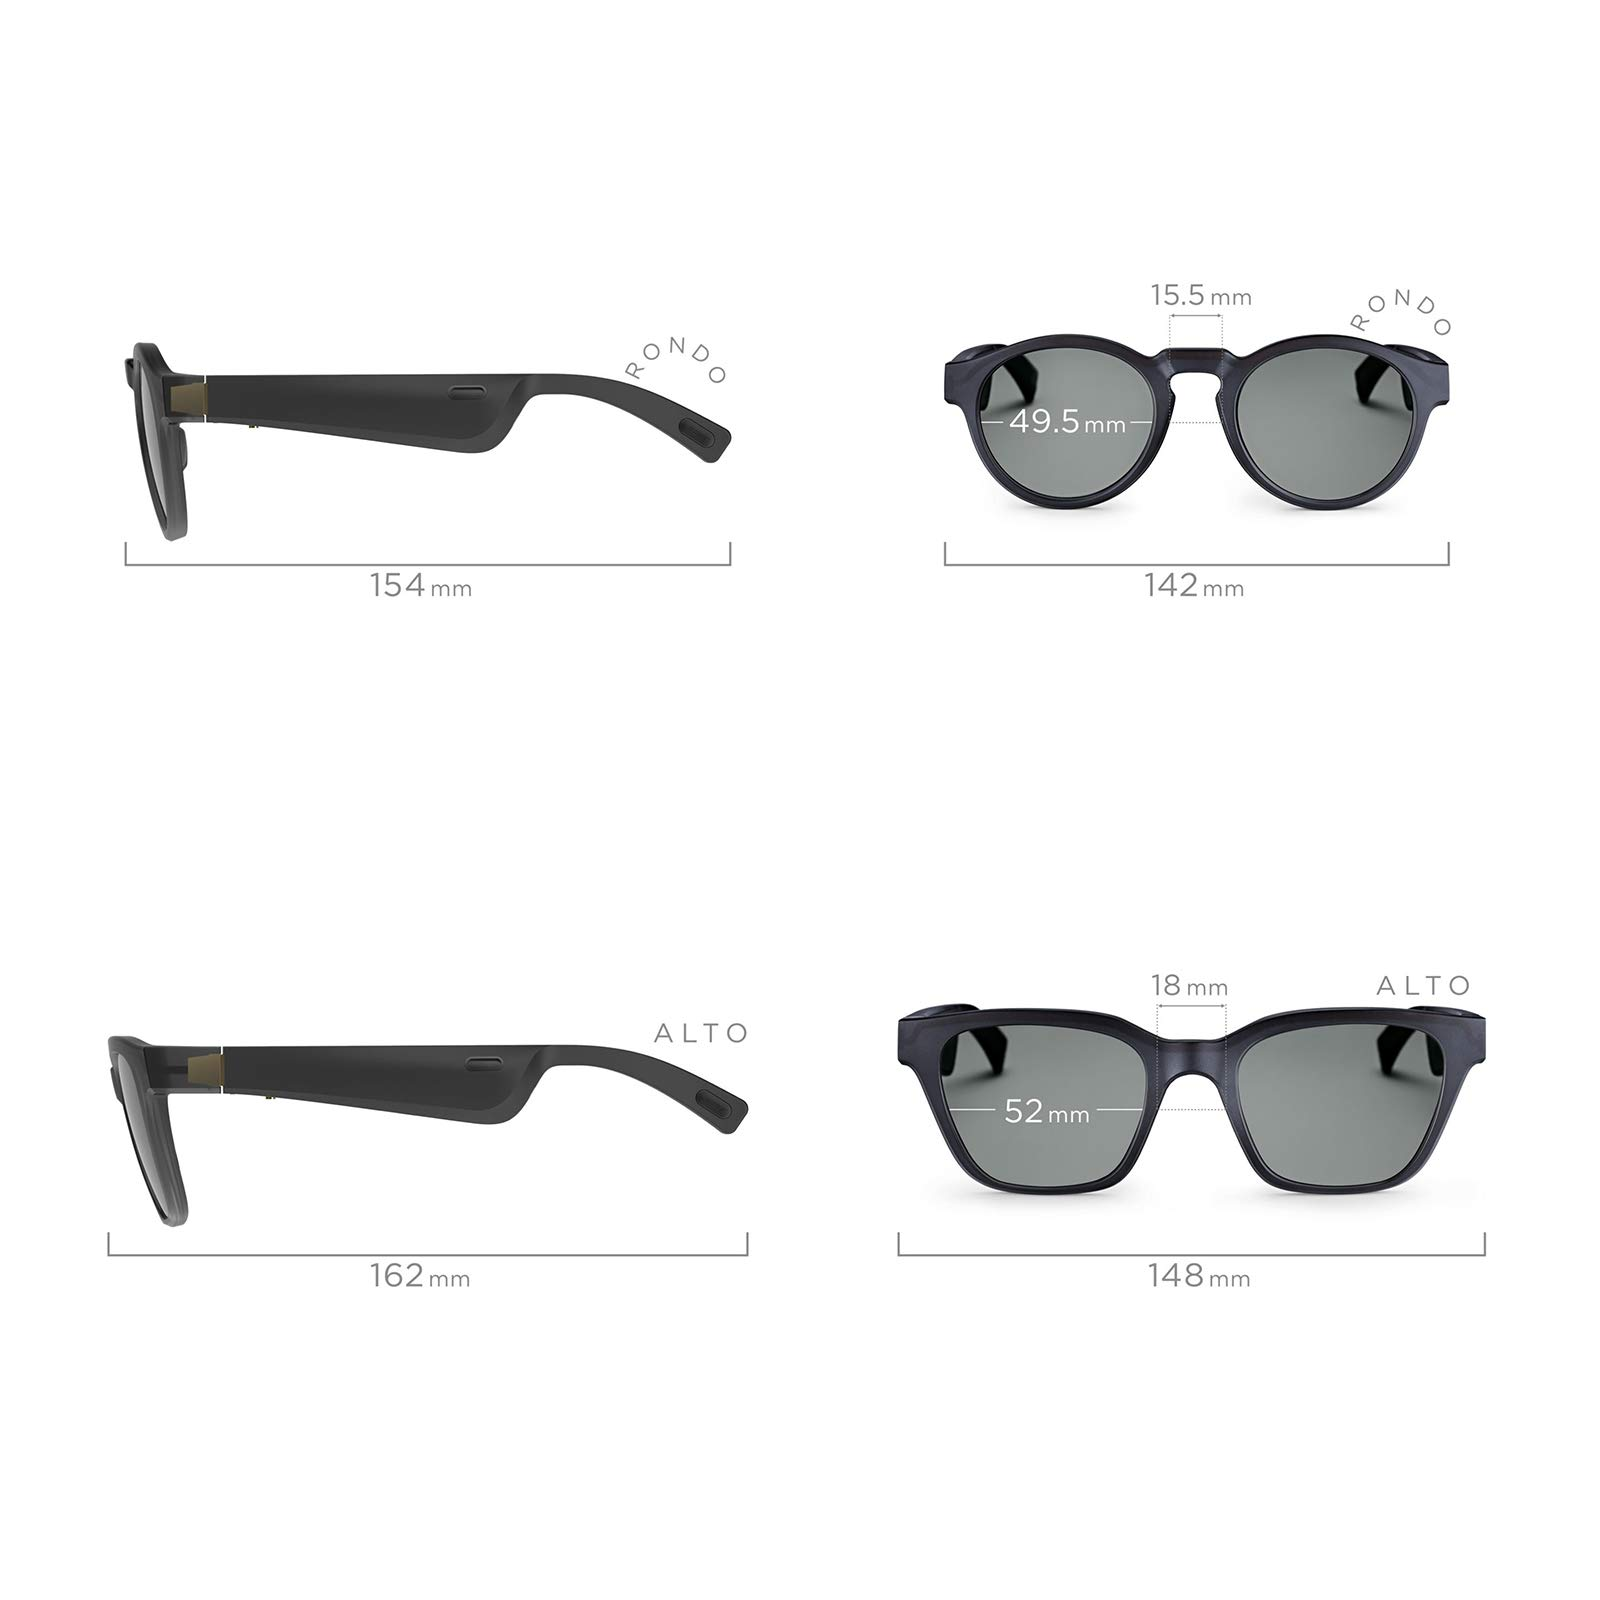 Bose Frames Audio Sunglasses, Alto, Black - with Bluetooth Connectivity by Bose (Image #5)